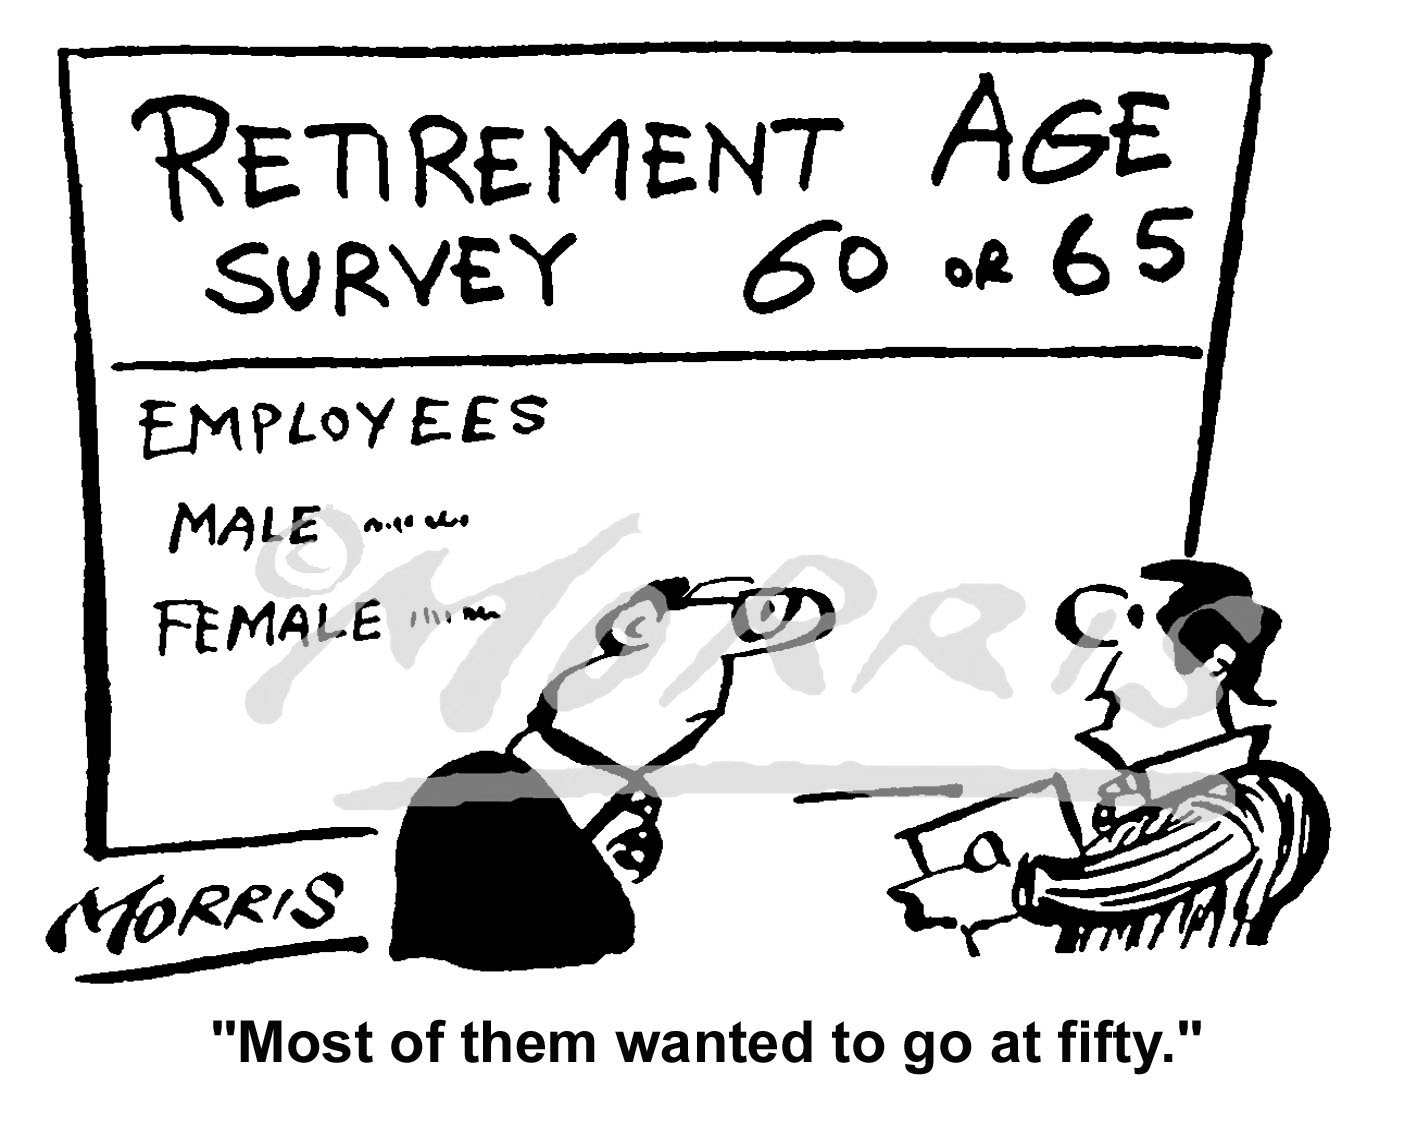 Retirement age survey cartoon Ref: 4547bw